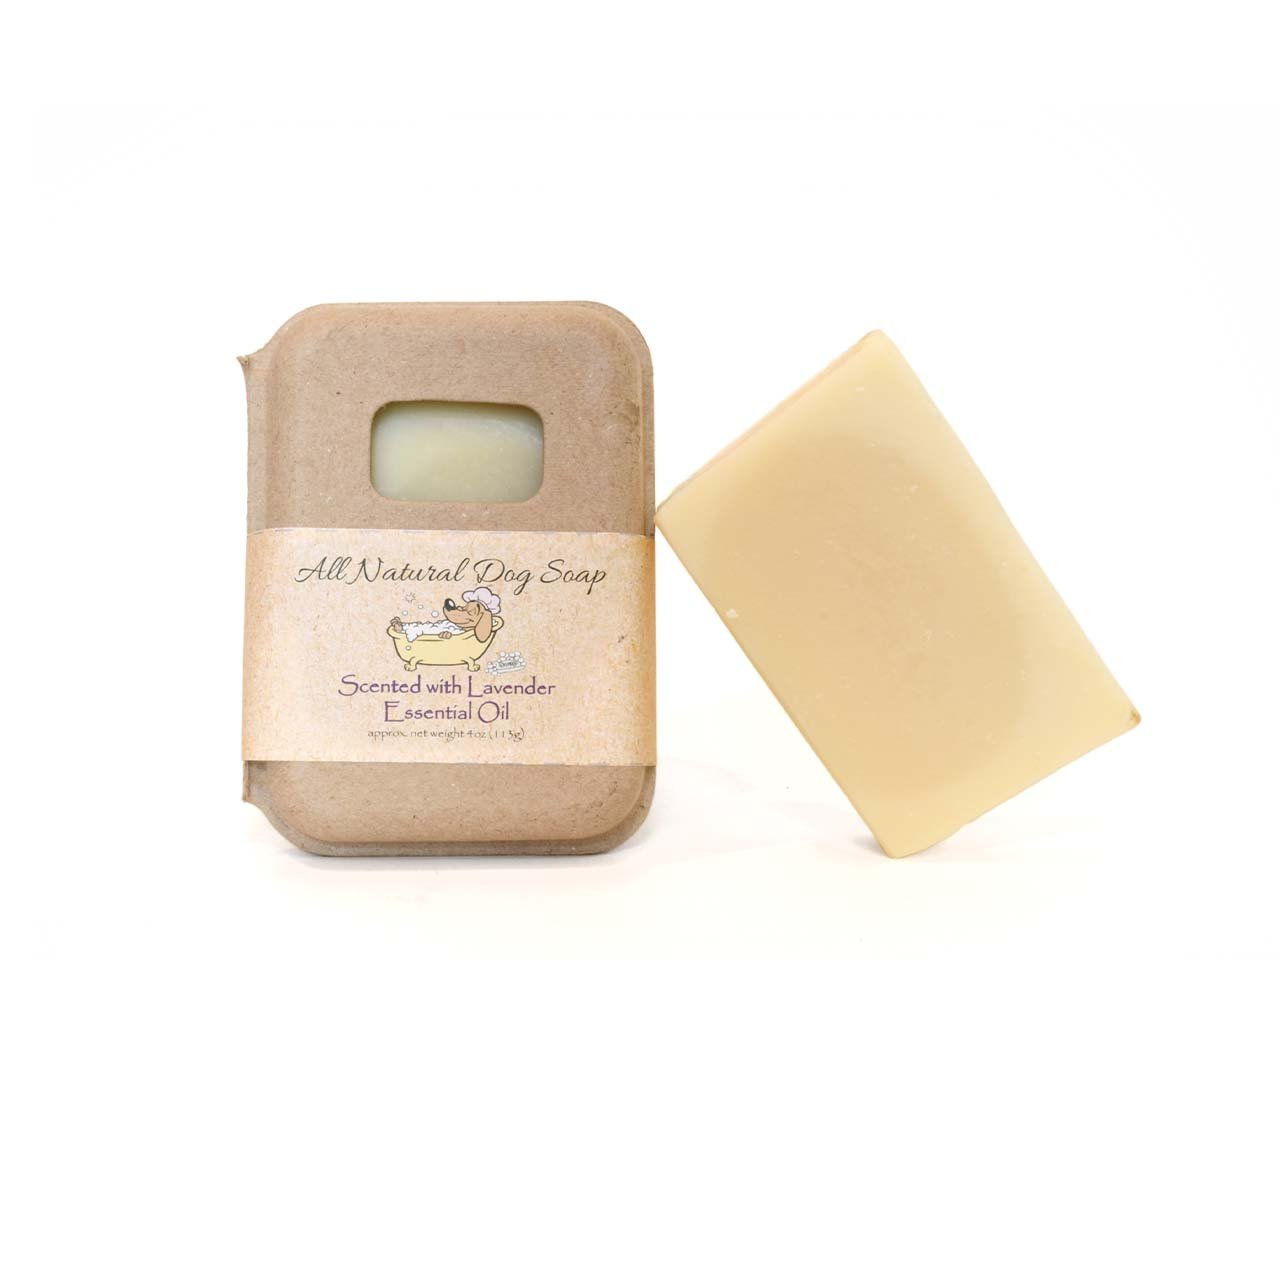 All Natural Dog Soap Shampoo Bar